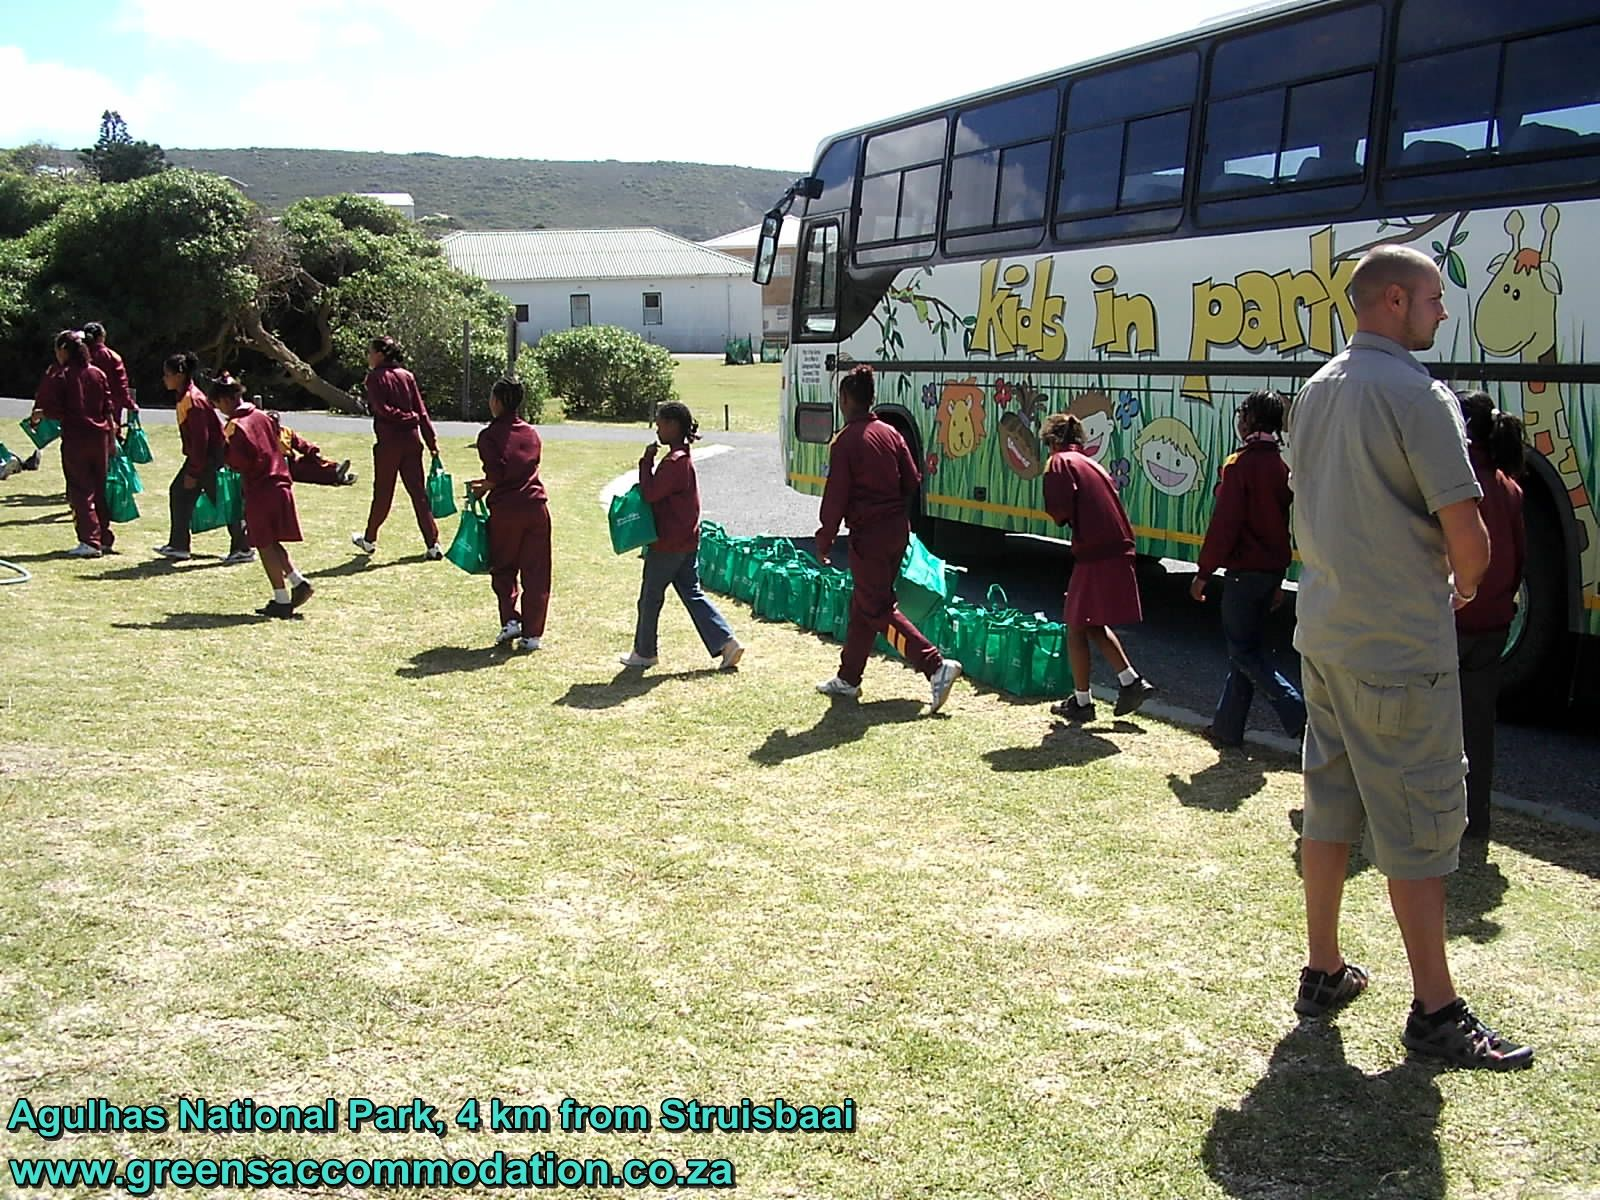 The Kids in Parks Programme provides a unique opportunity for learners and their educators to visit a national park and learn a lot about natural and cultural heritage. Agulhas National Park is 4 km from our self-catering houses in Struisbaai, Western Cape.